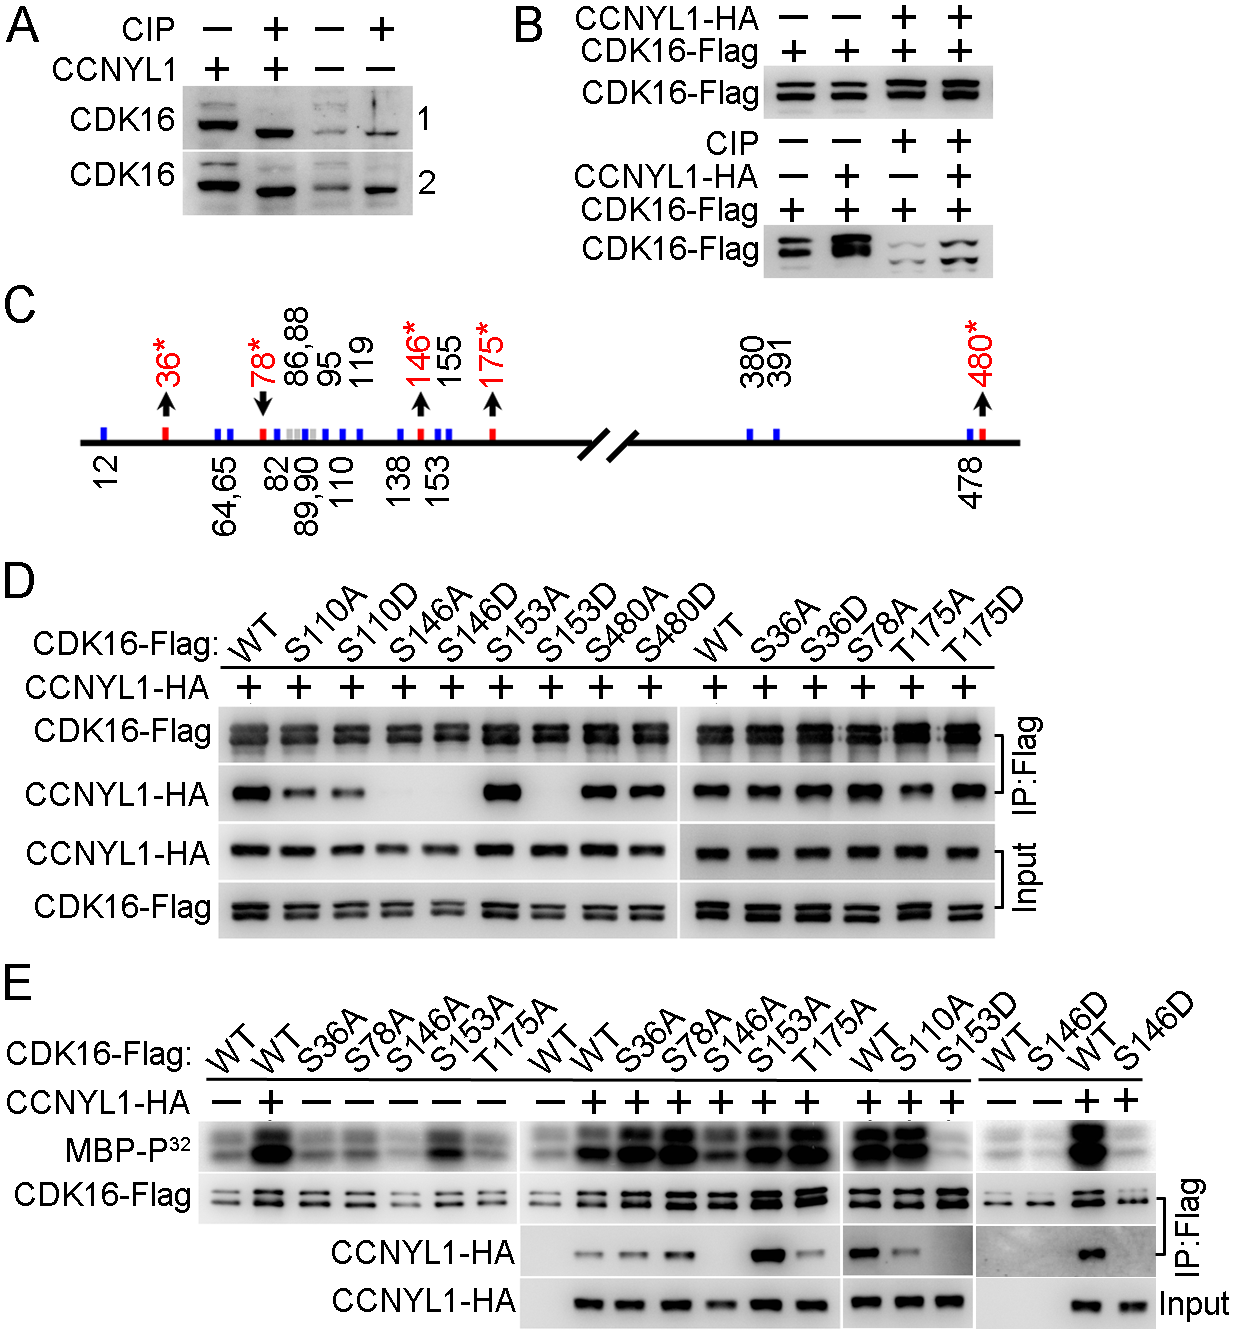 Identification and functional study of phosphorylation modifications of CDK16.